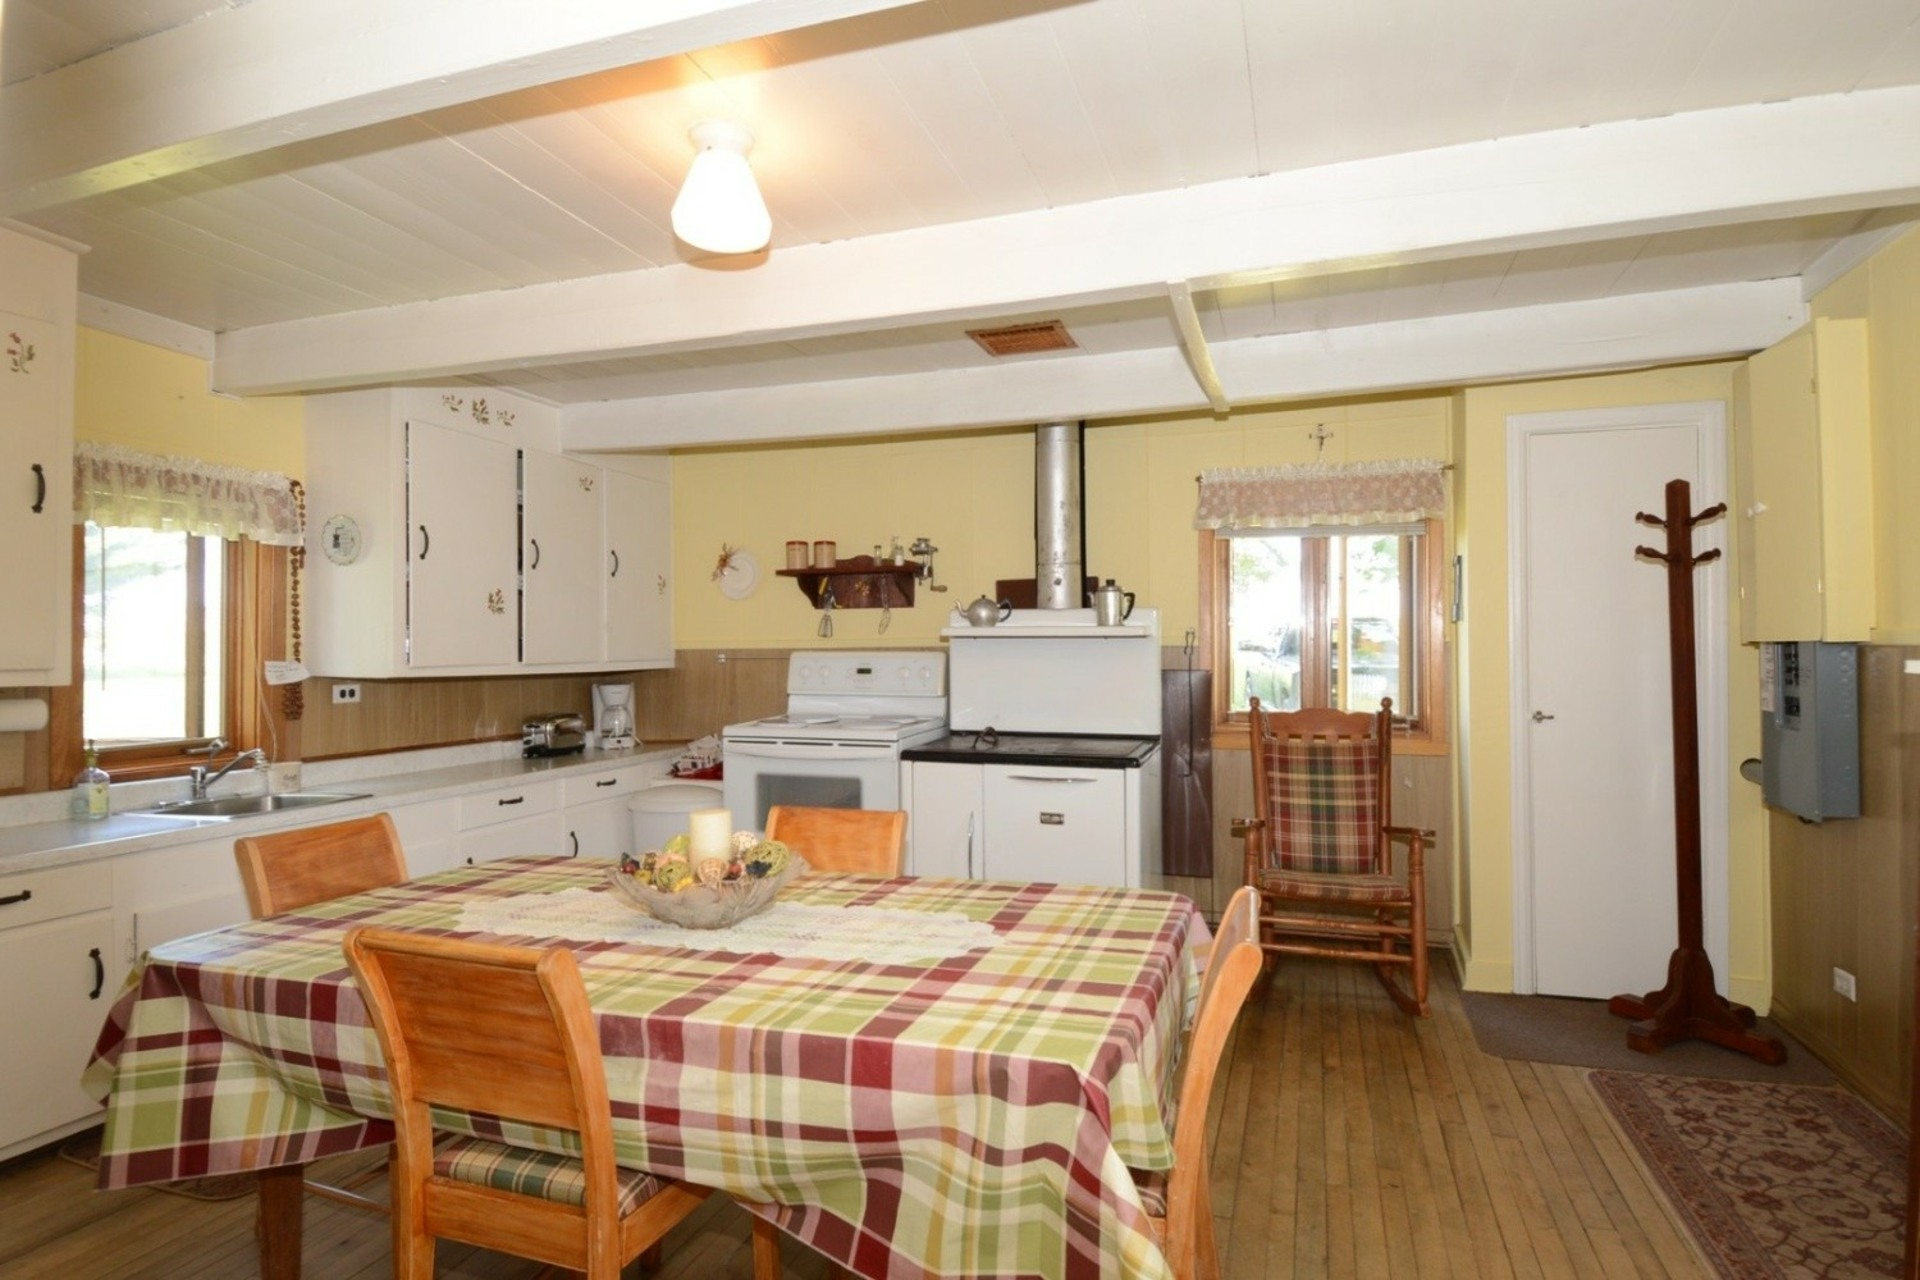 image 7 - Farmhouse For sale Rigaud - 8 rooms